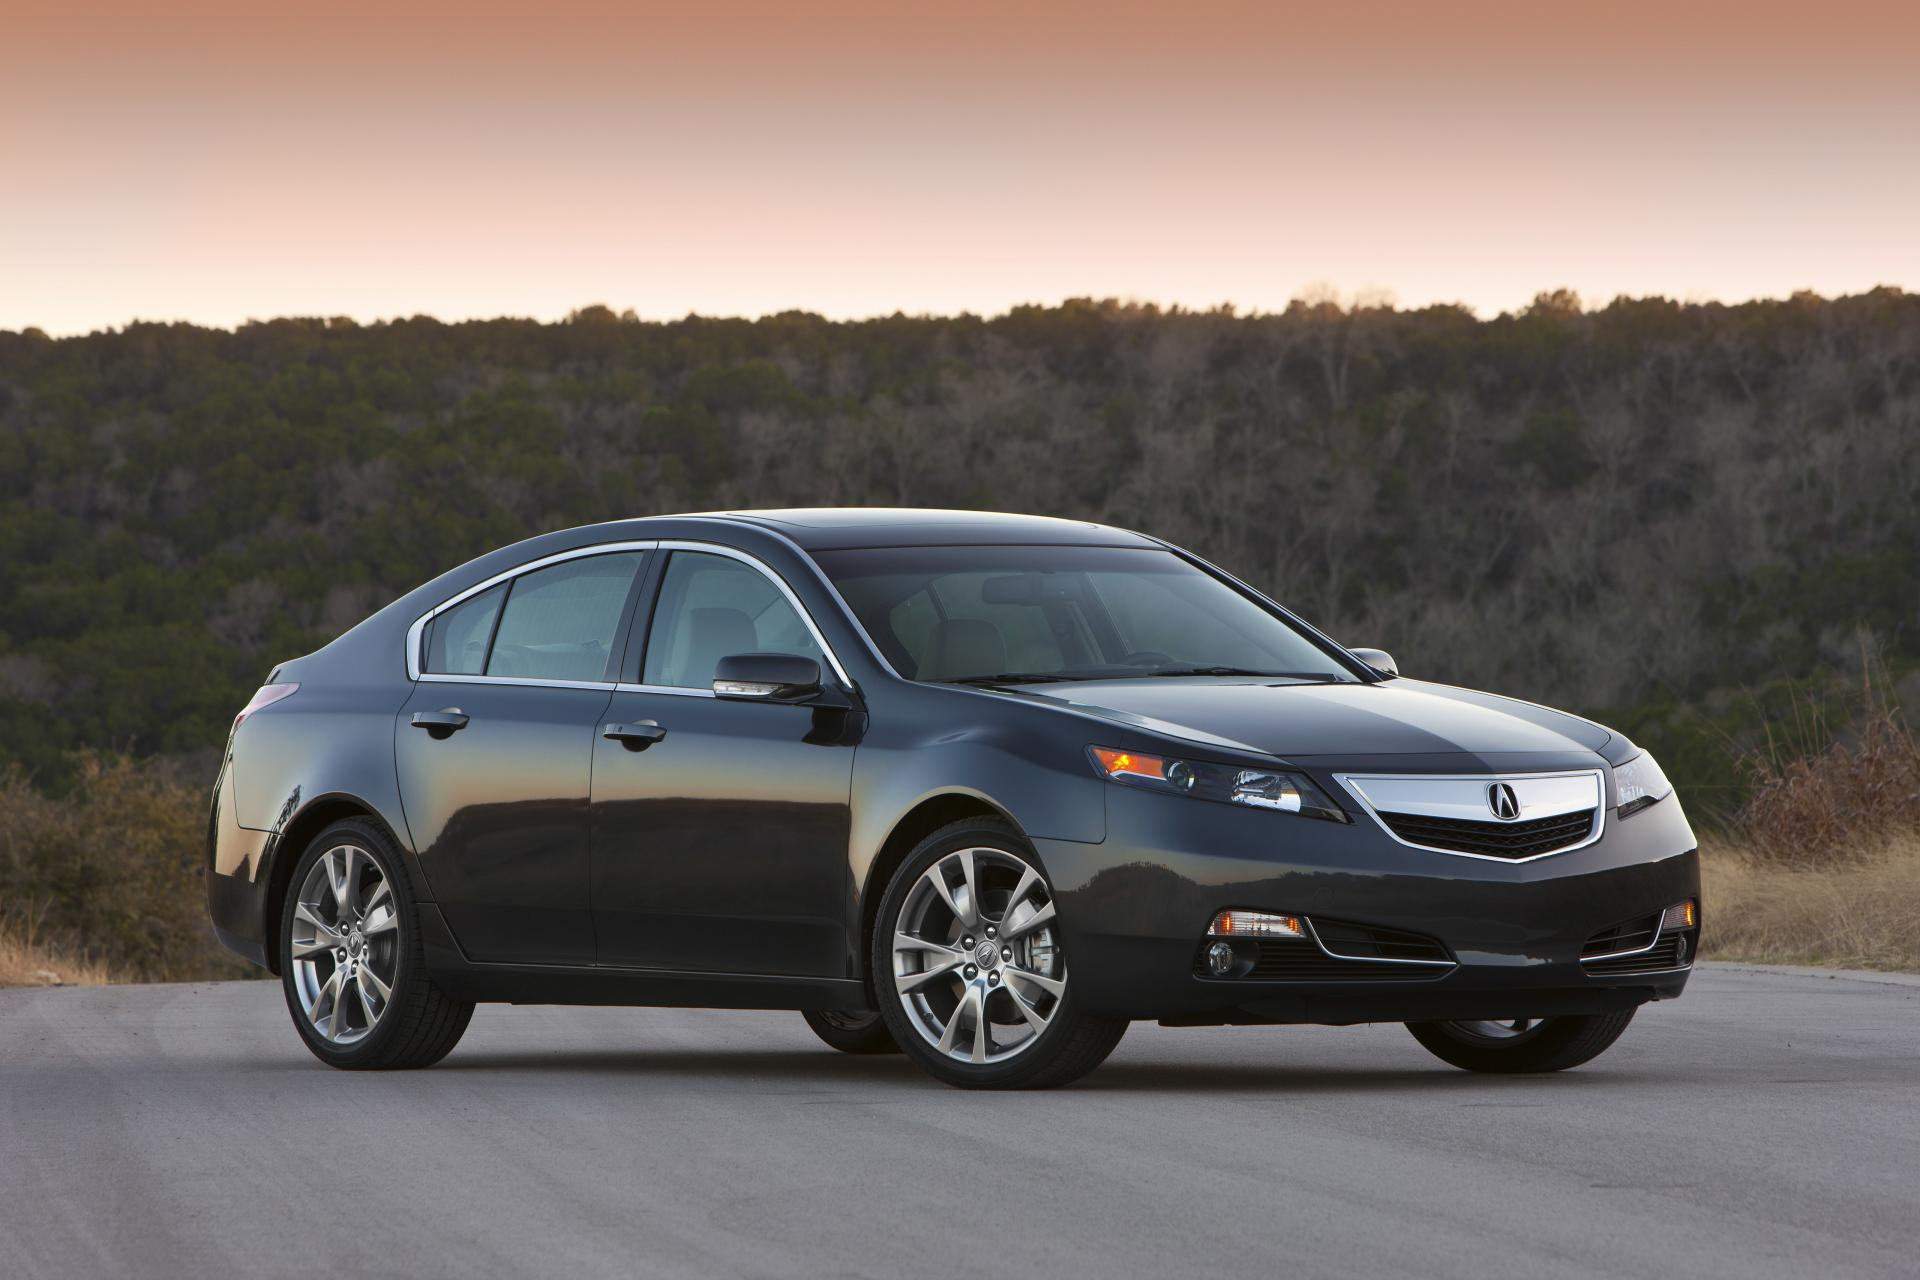 2014 Acura TL News and Information